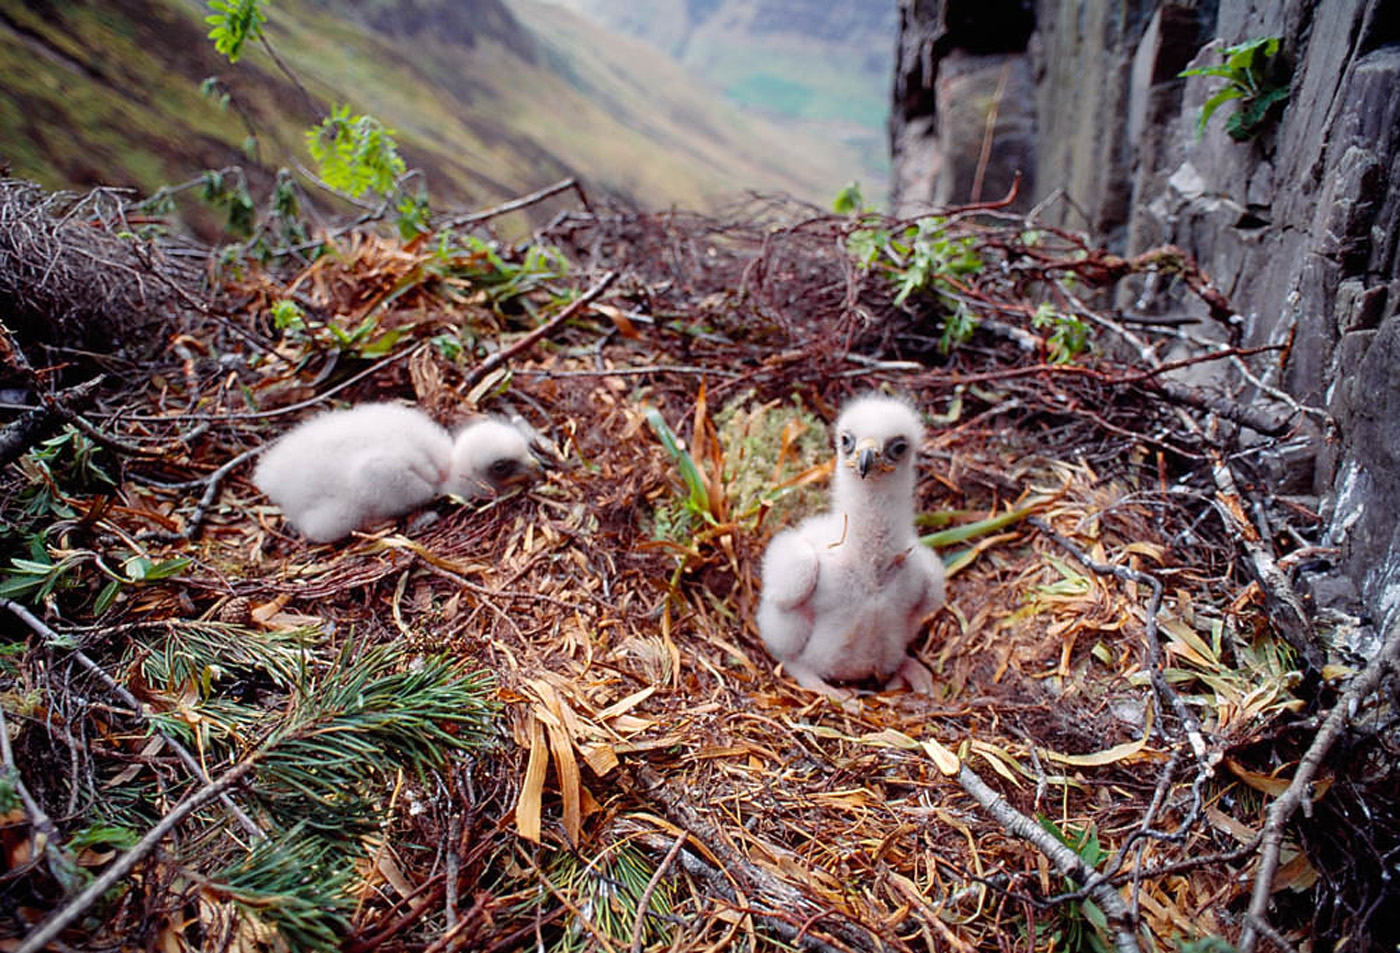 An eagle eyrie with twin chicks